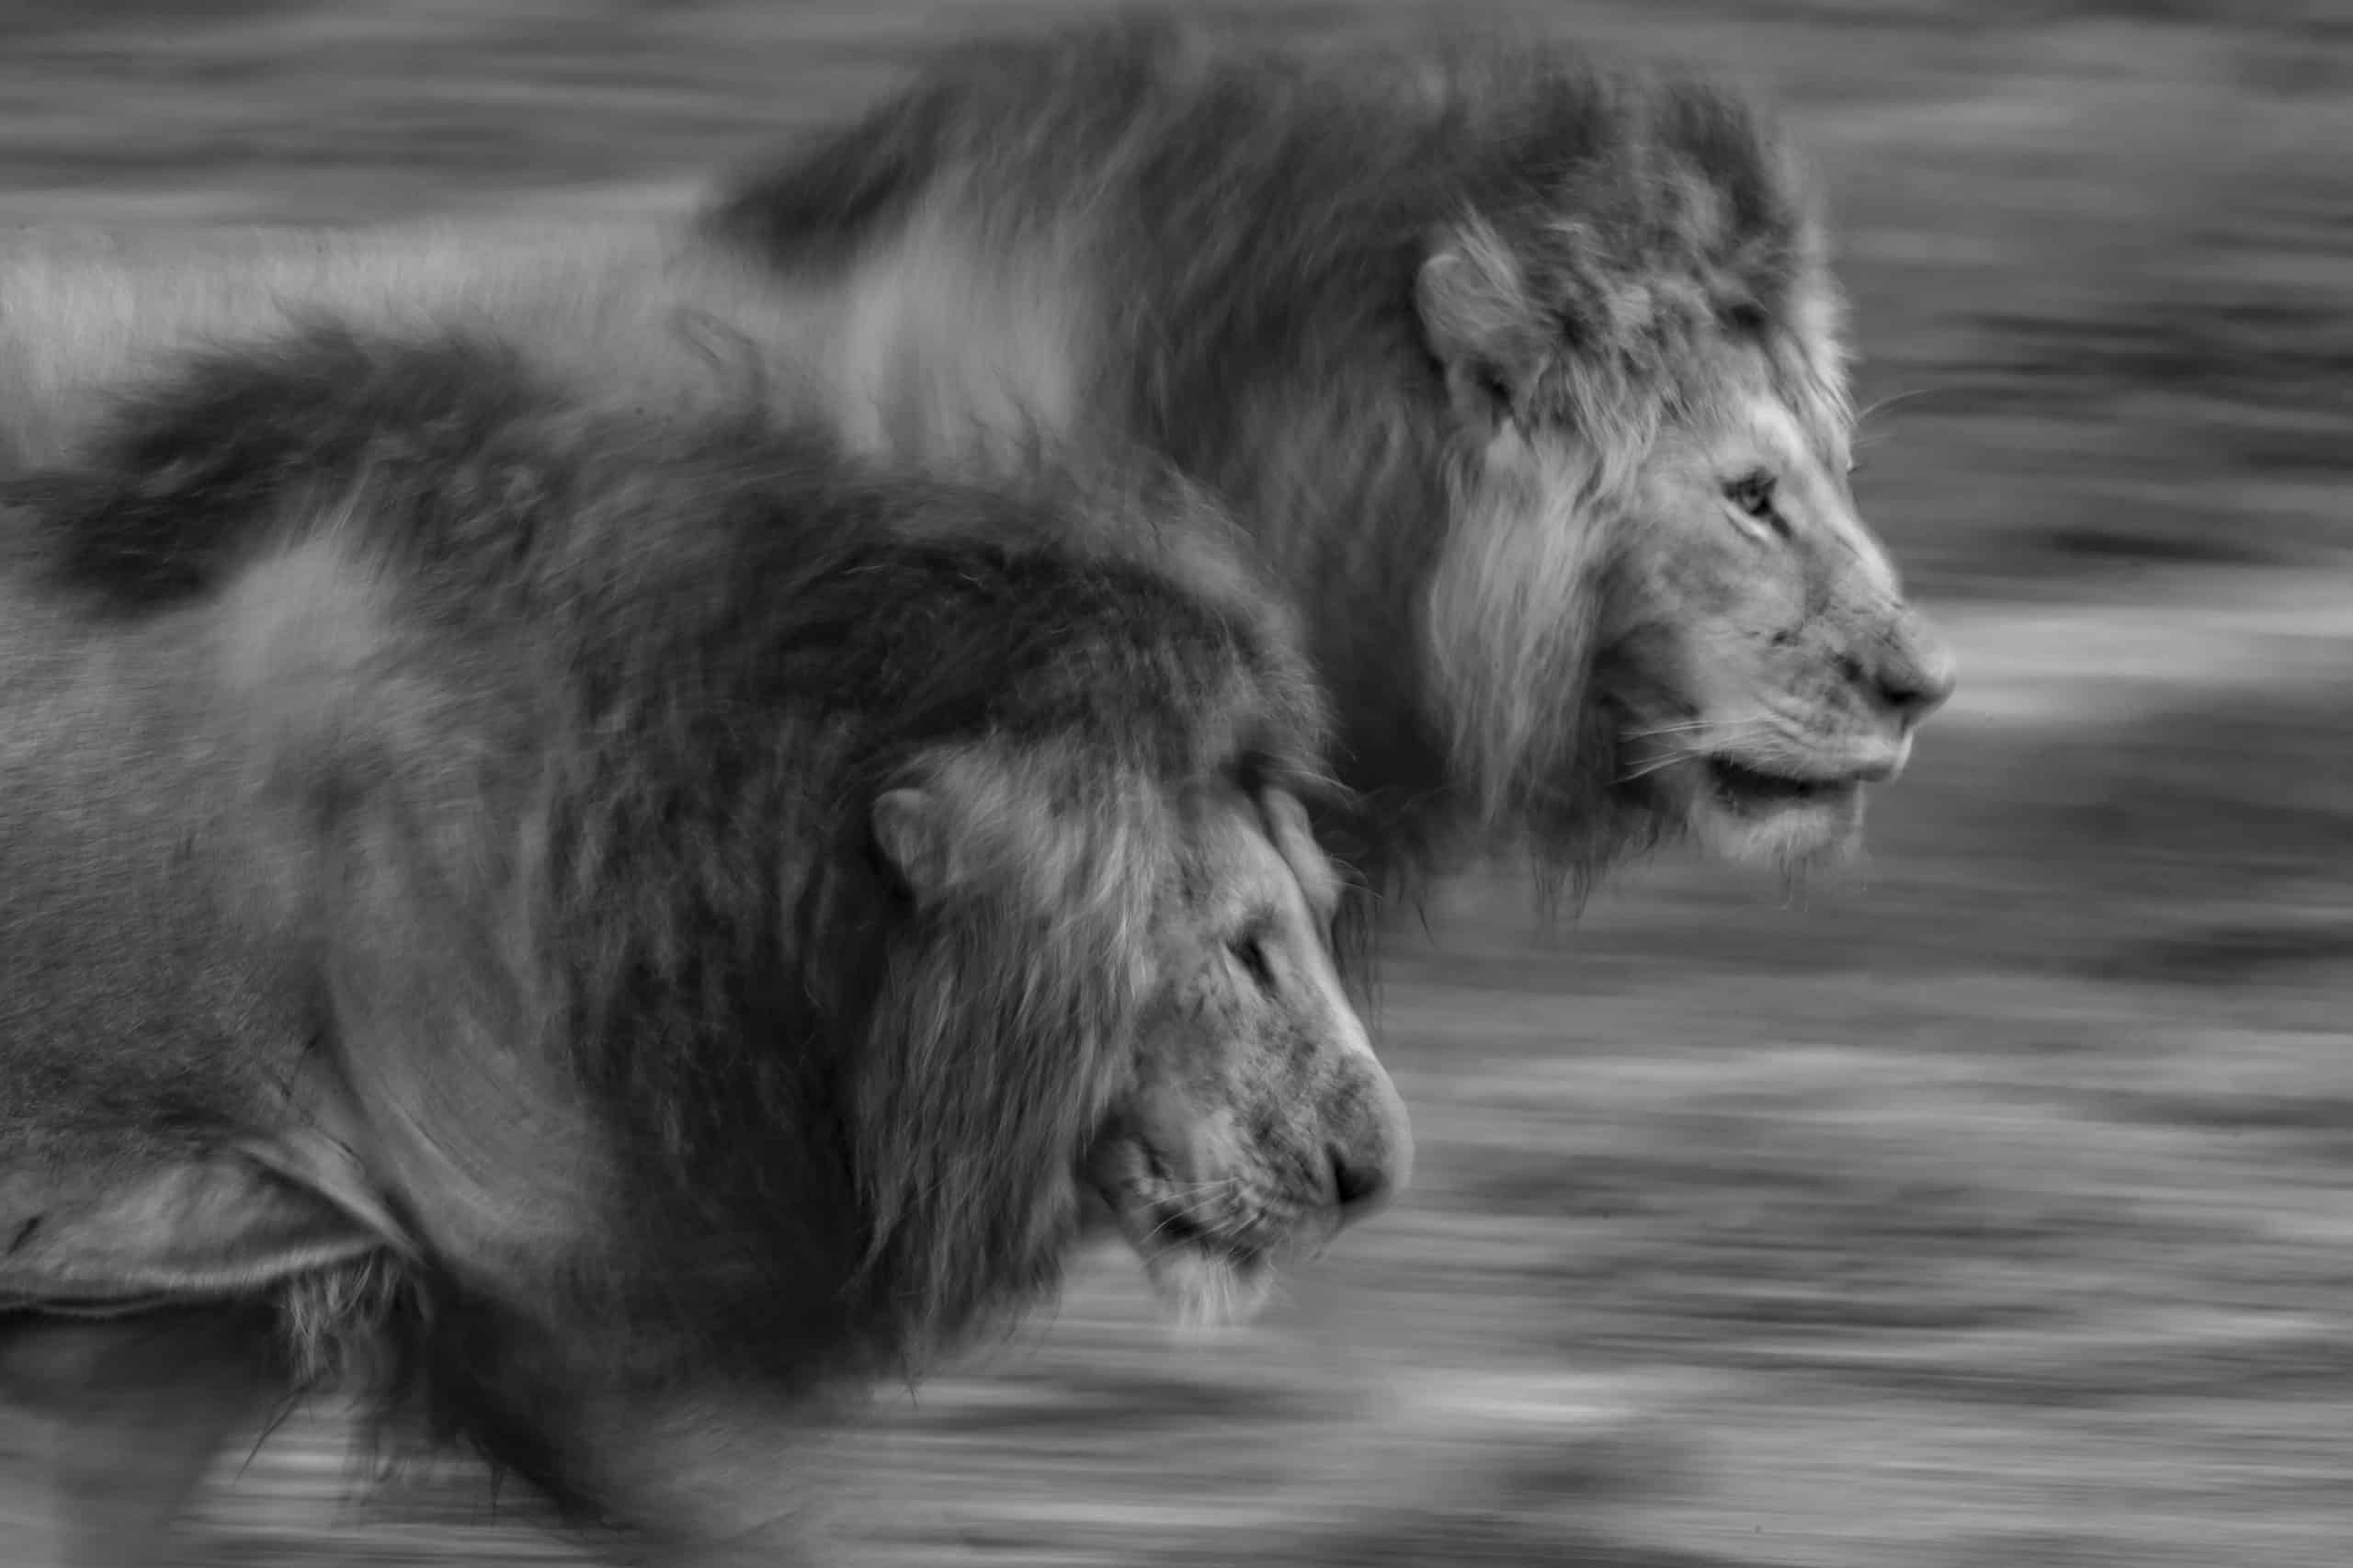 Remembering lions (38)